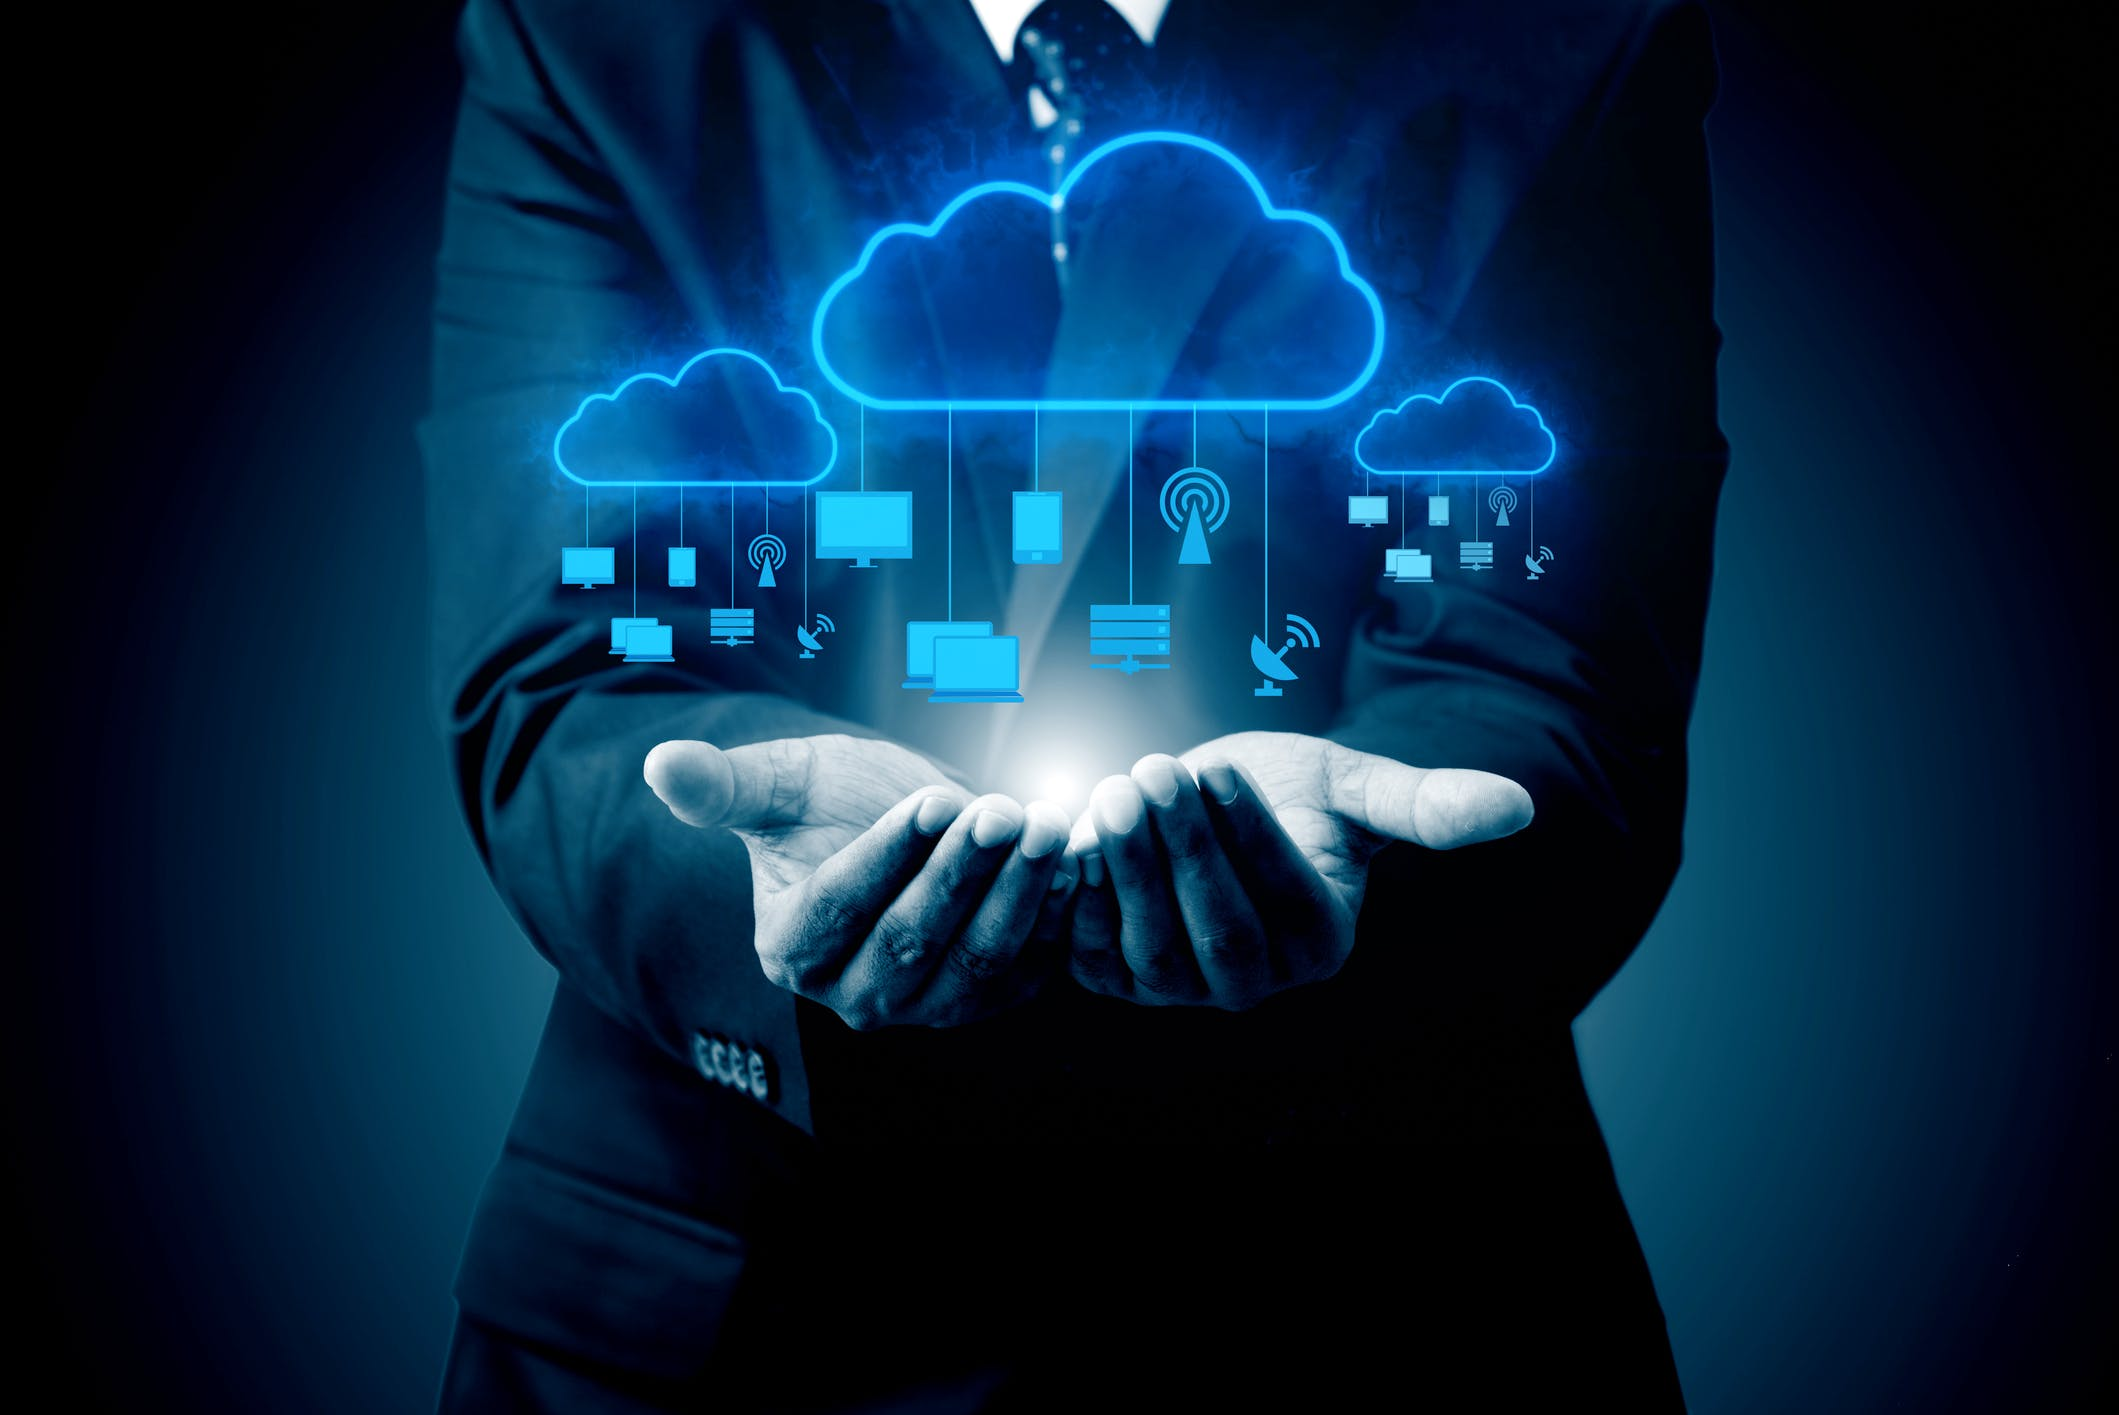 how cloud technology can benet lawyers